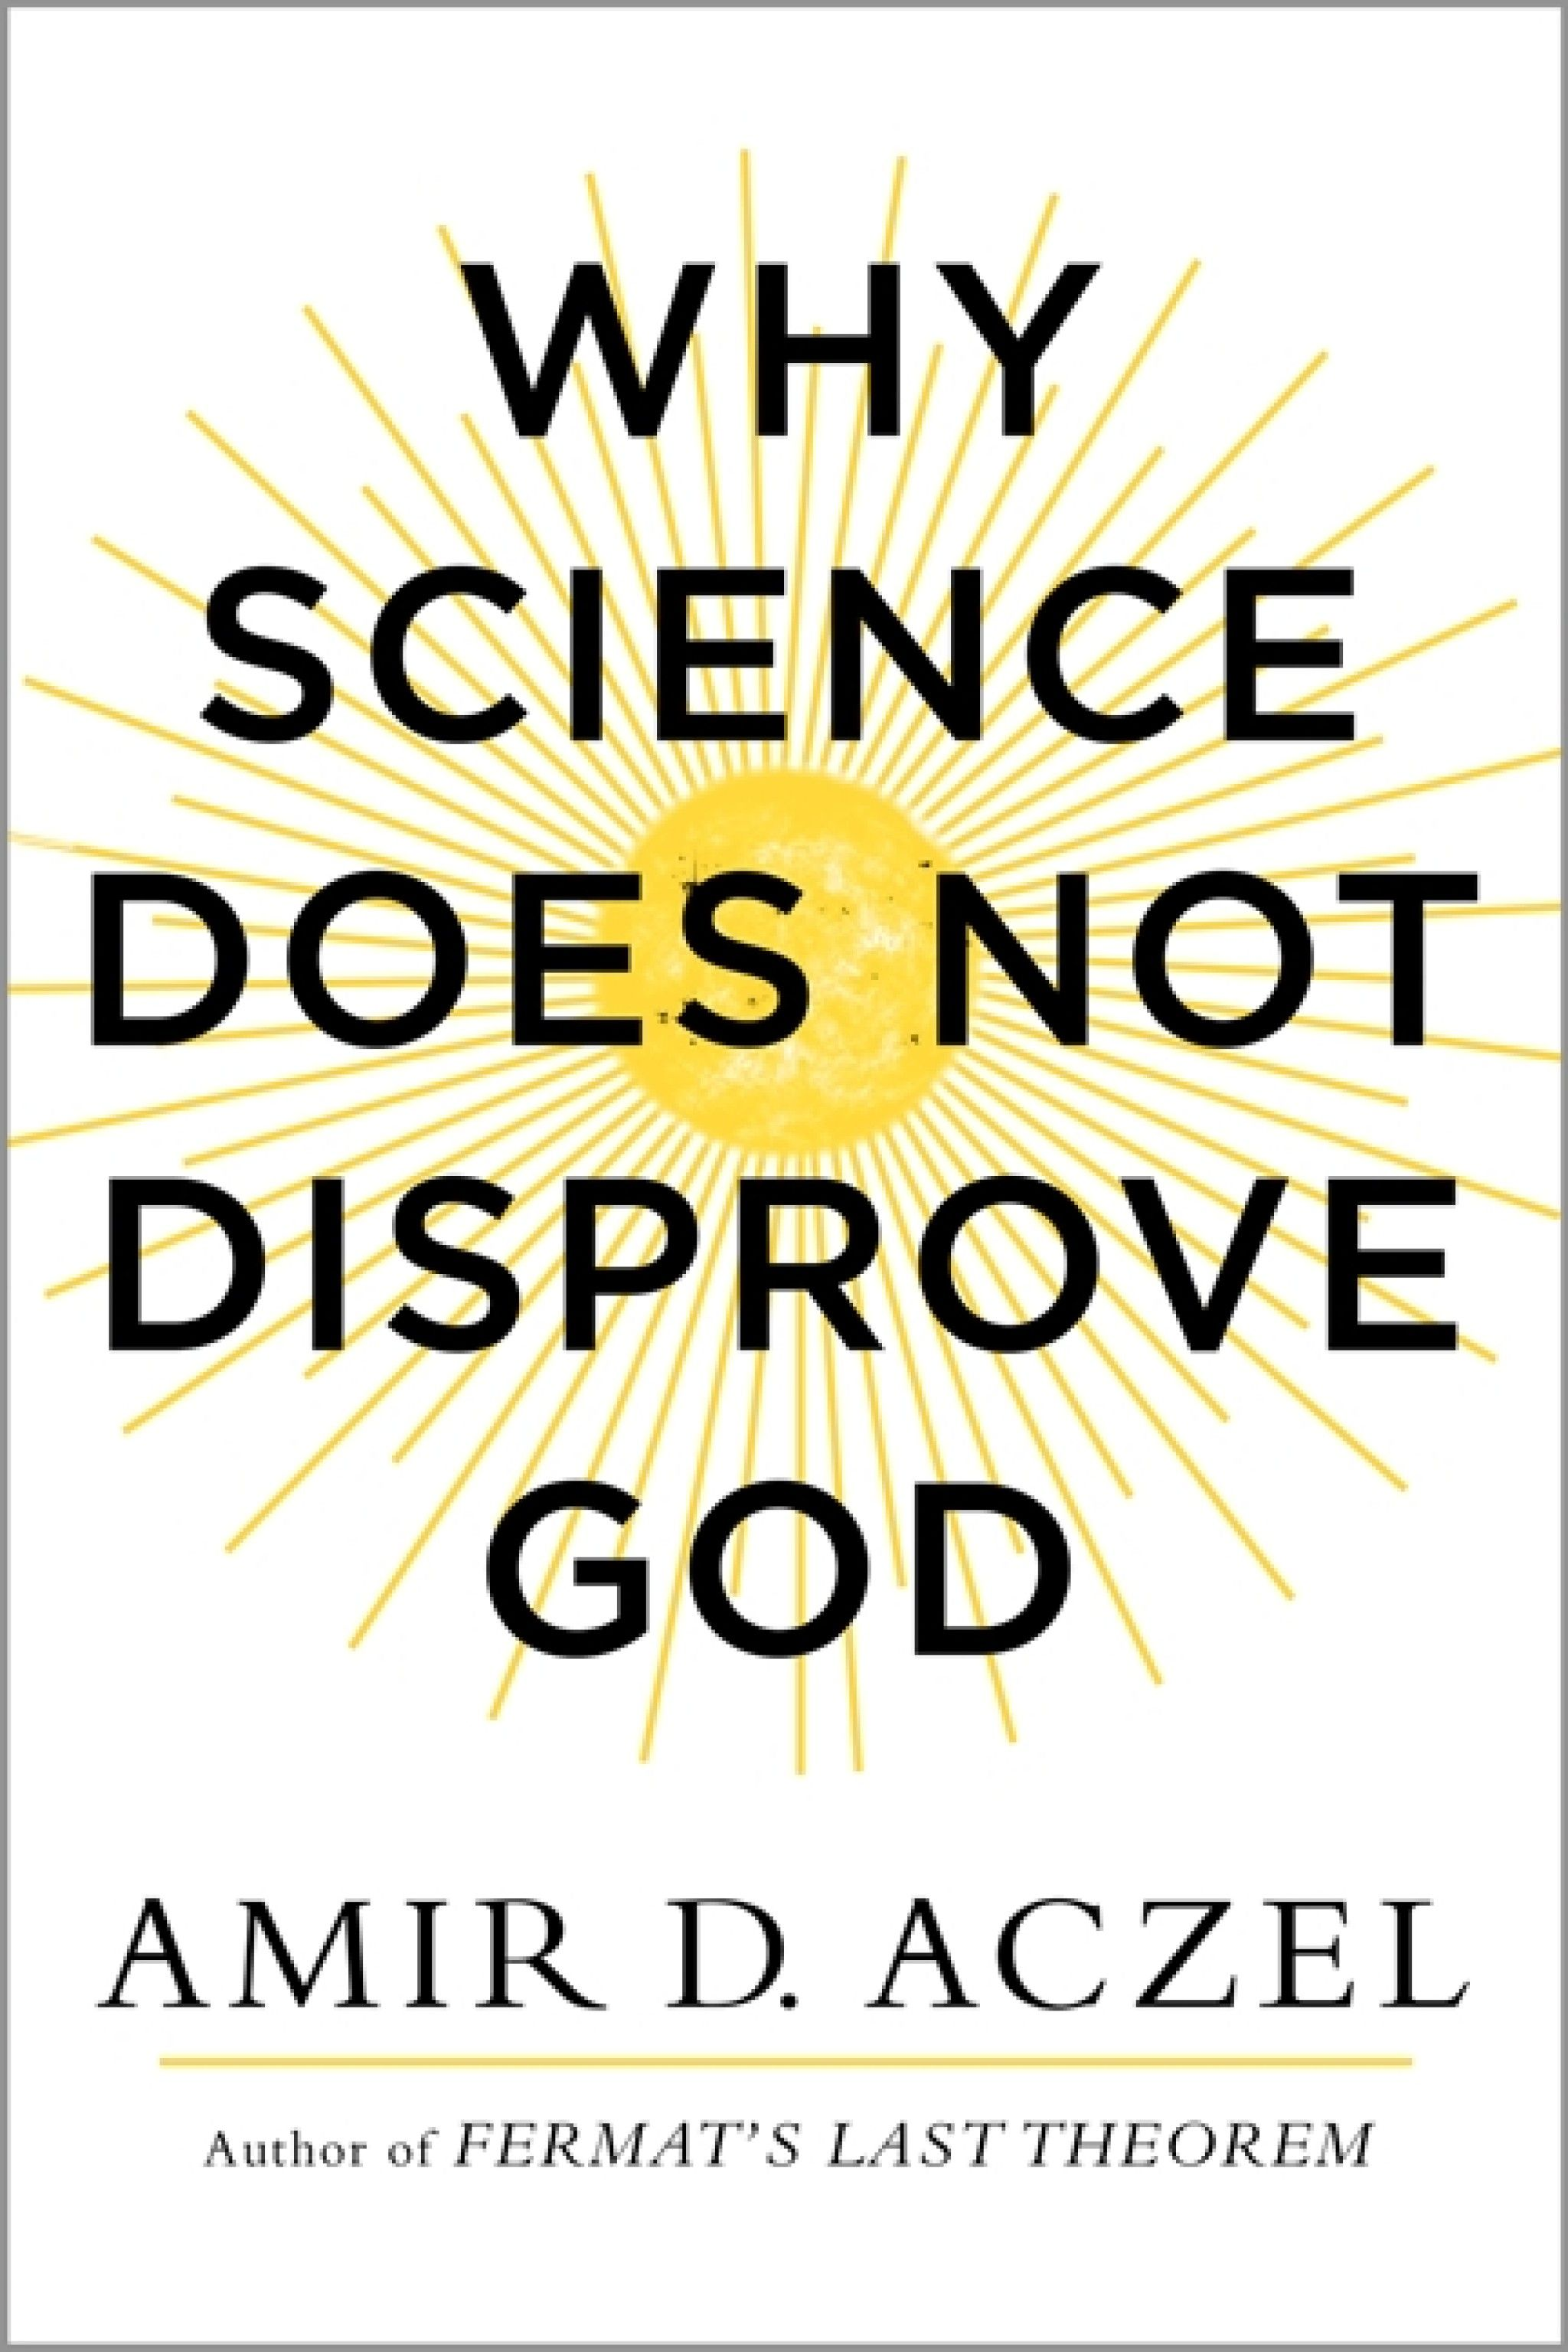 Book review 'Why Science Does Not Disprove God' by Amir D